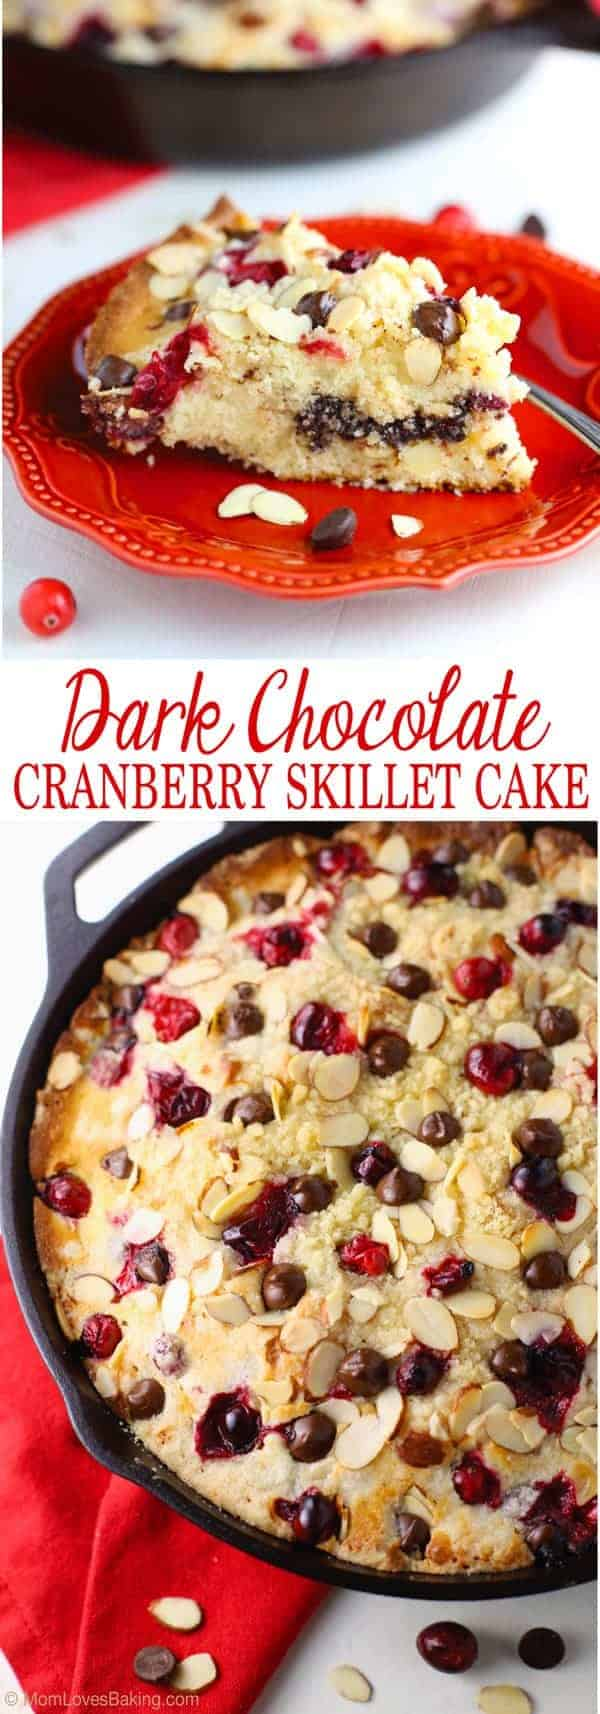 Dark Chocolate Cranberry Skillet Cake